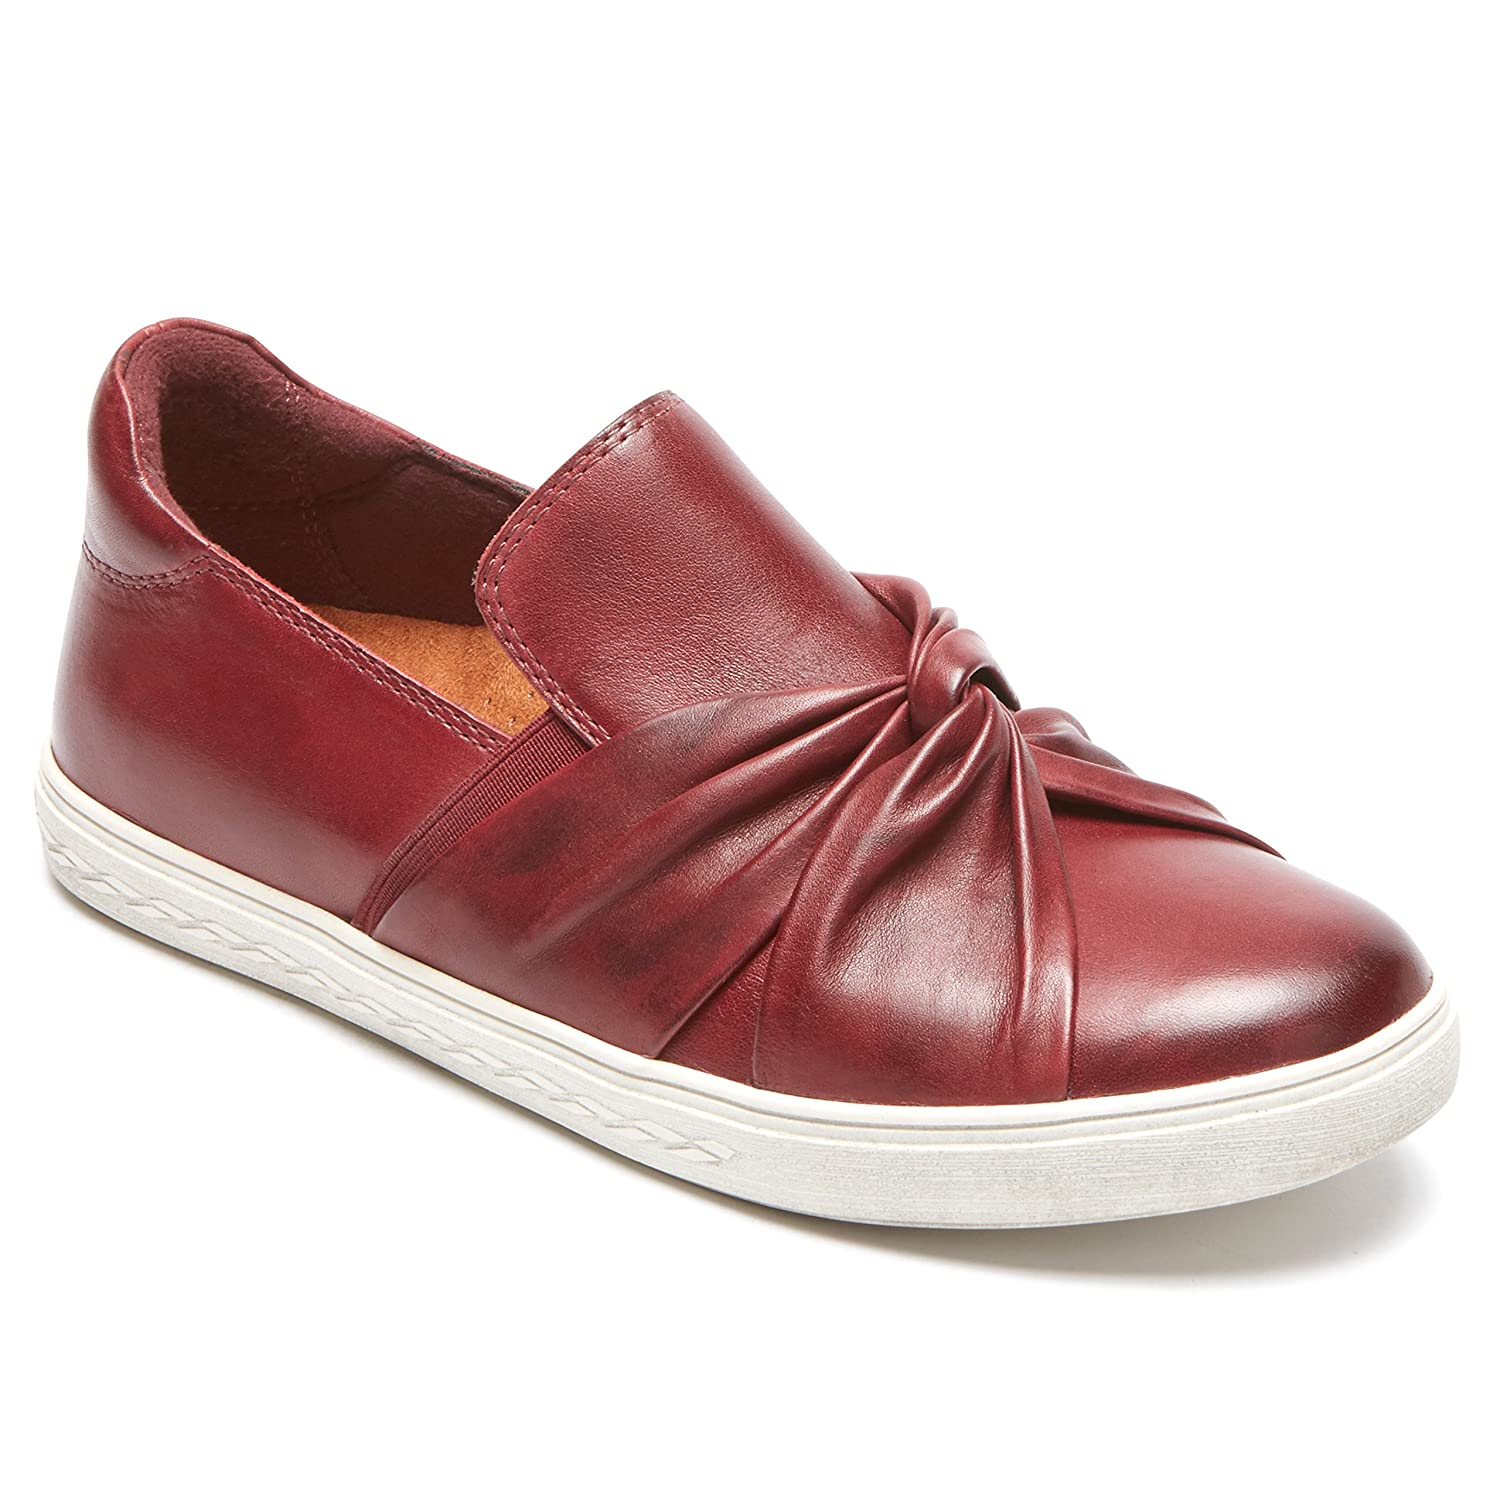 Cobb Hill Women's Willa Bow Slipon Sneaker B01N19RWGL 7.5 B(M) US|Wine Leather